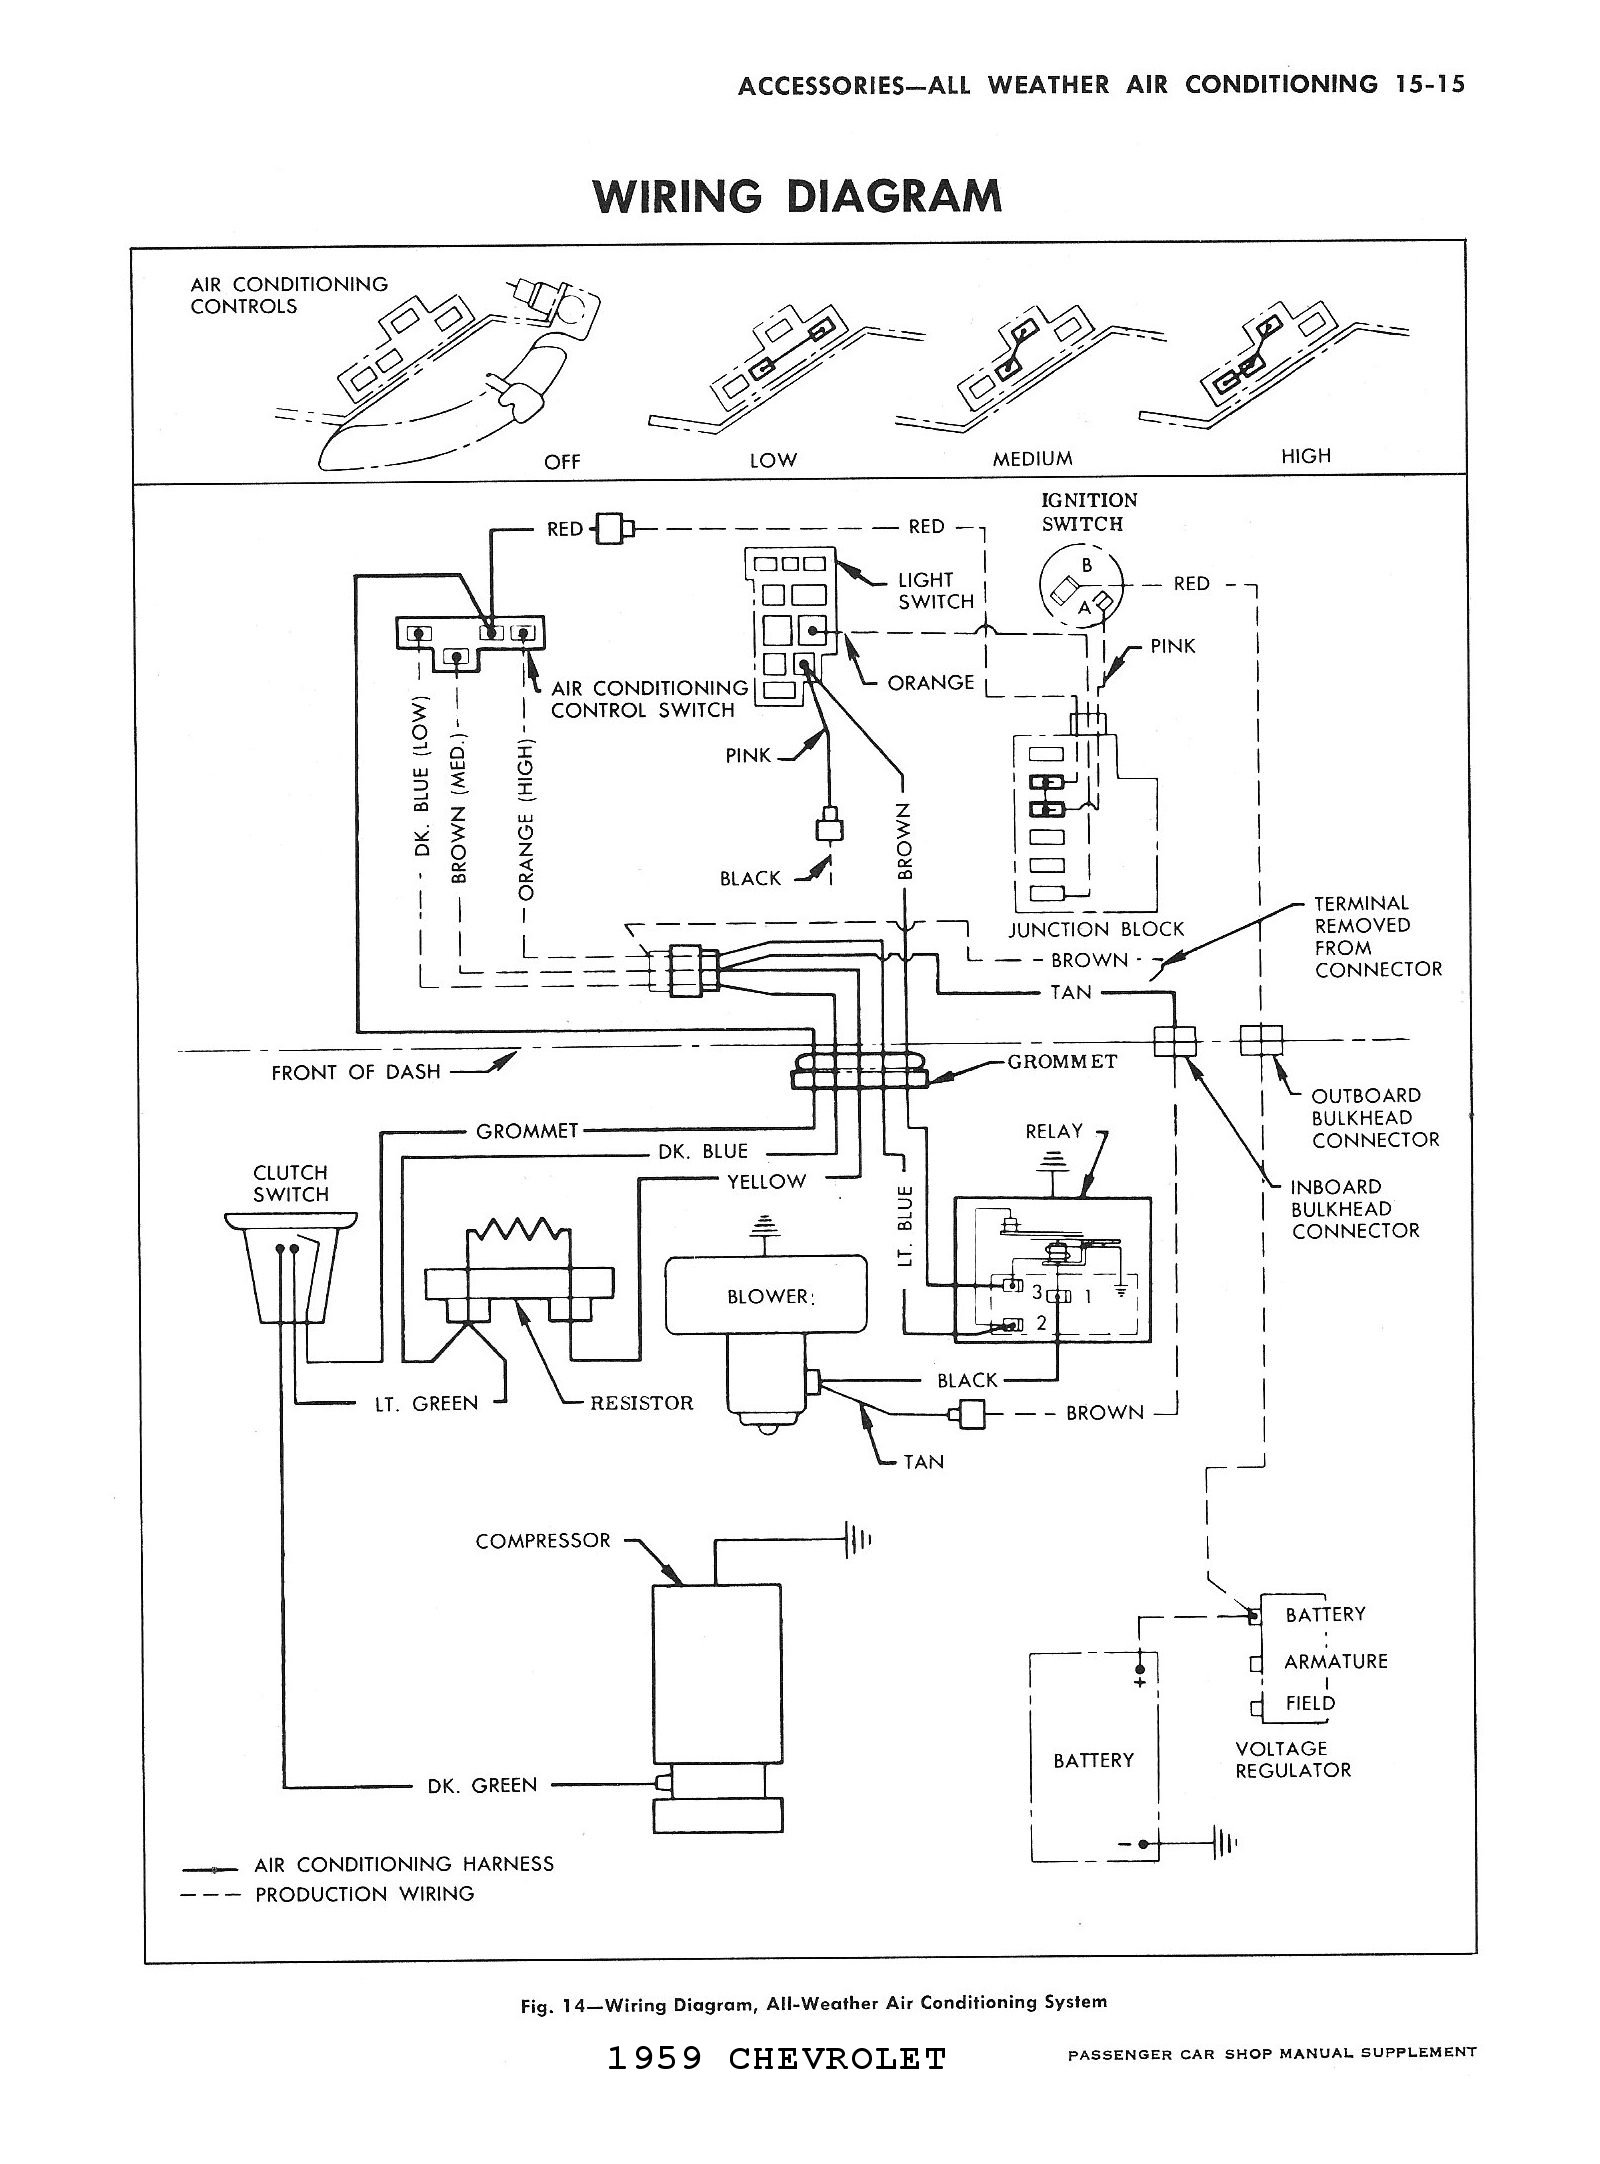 1959 Corvette Heater Diagram, 1959, Free Engine Image For